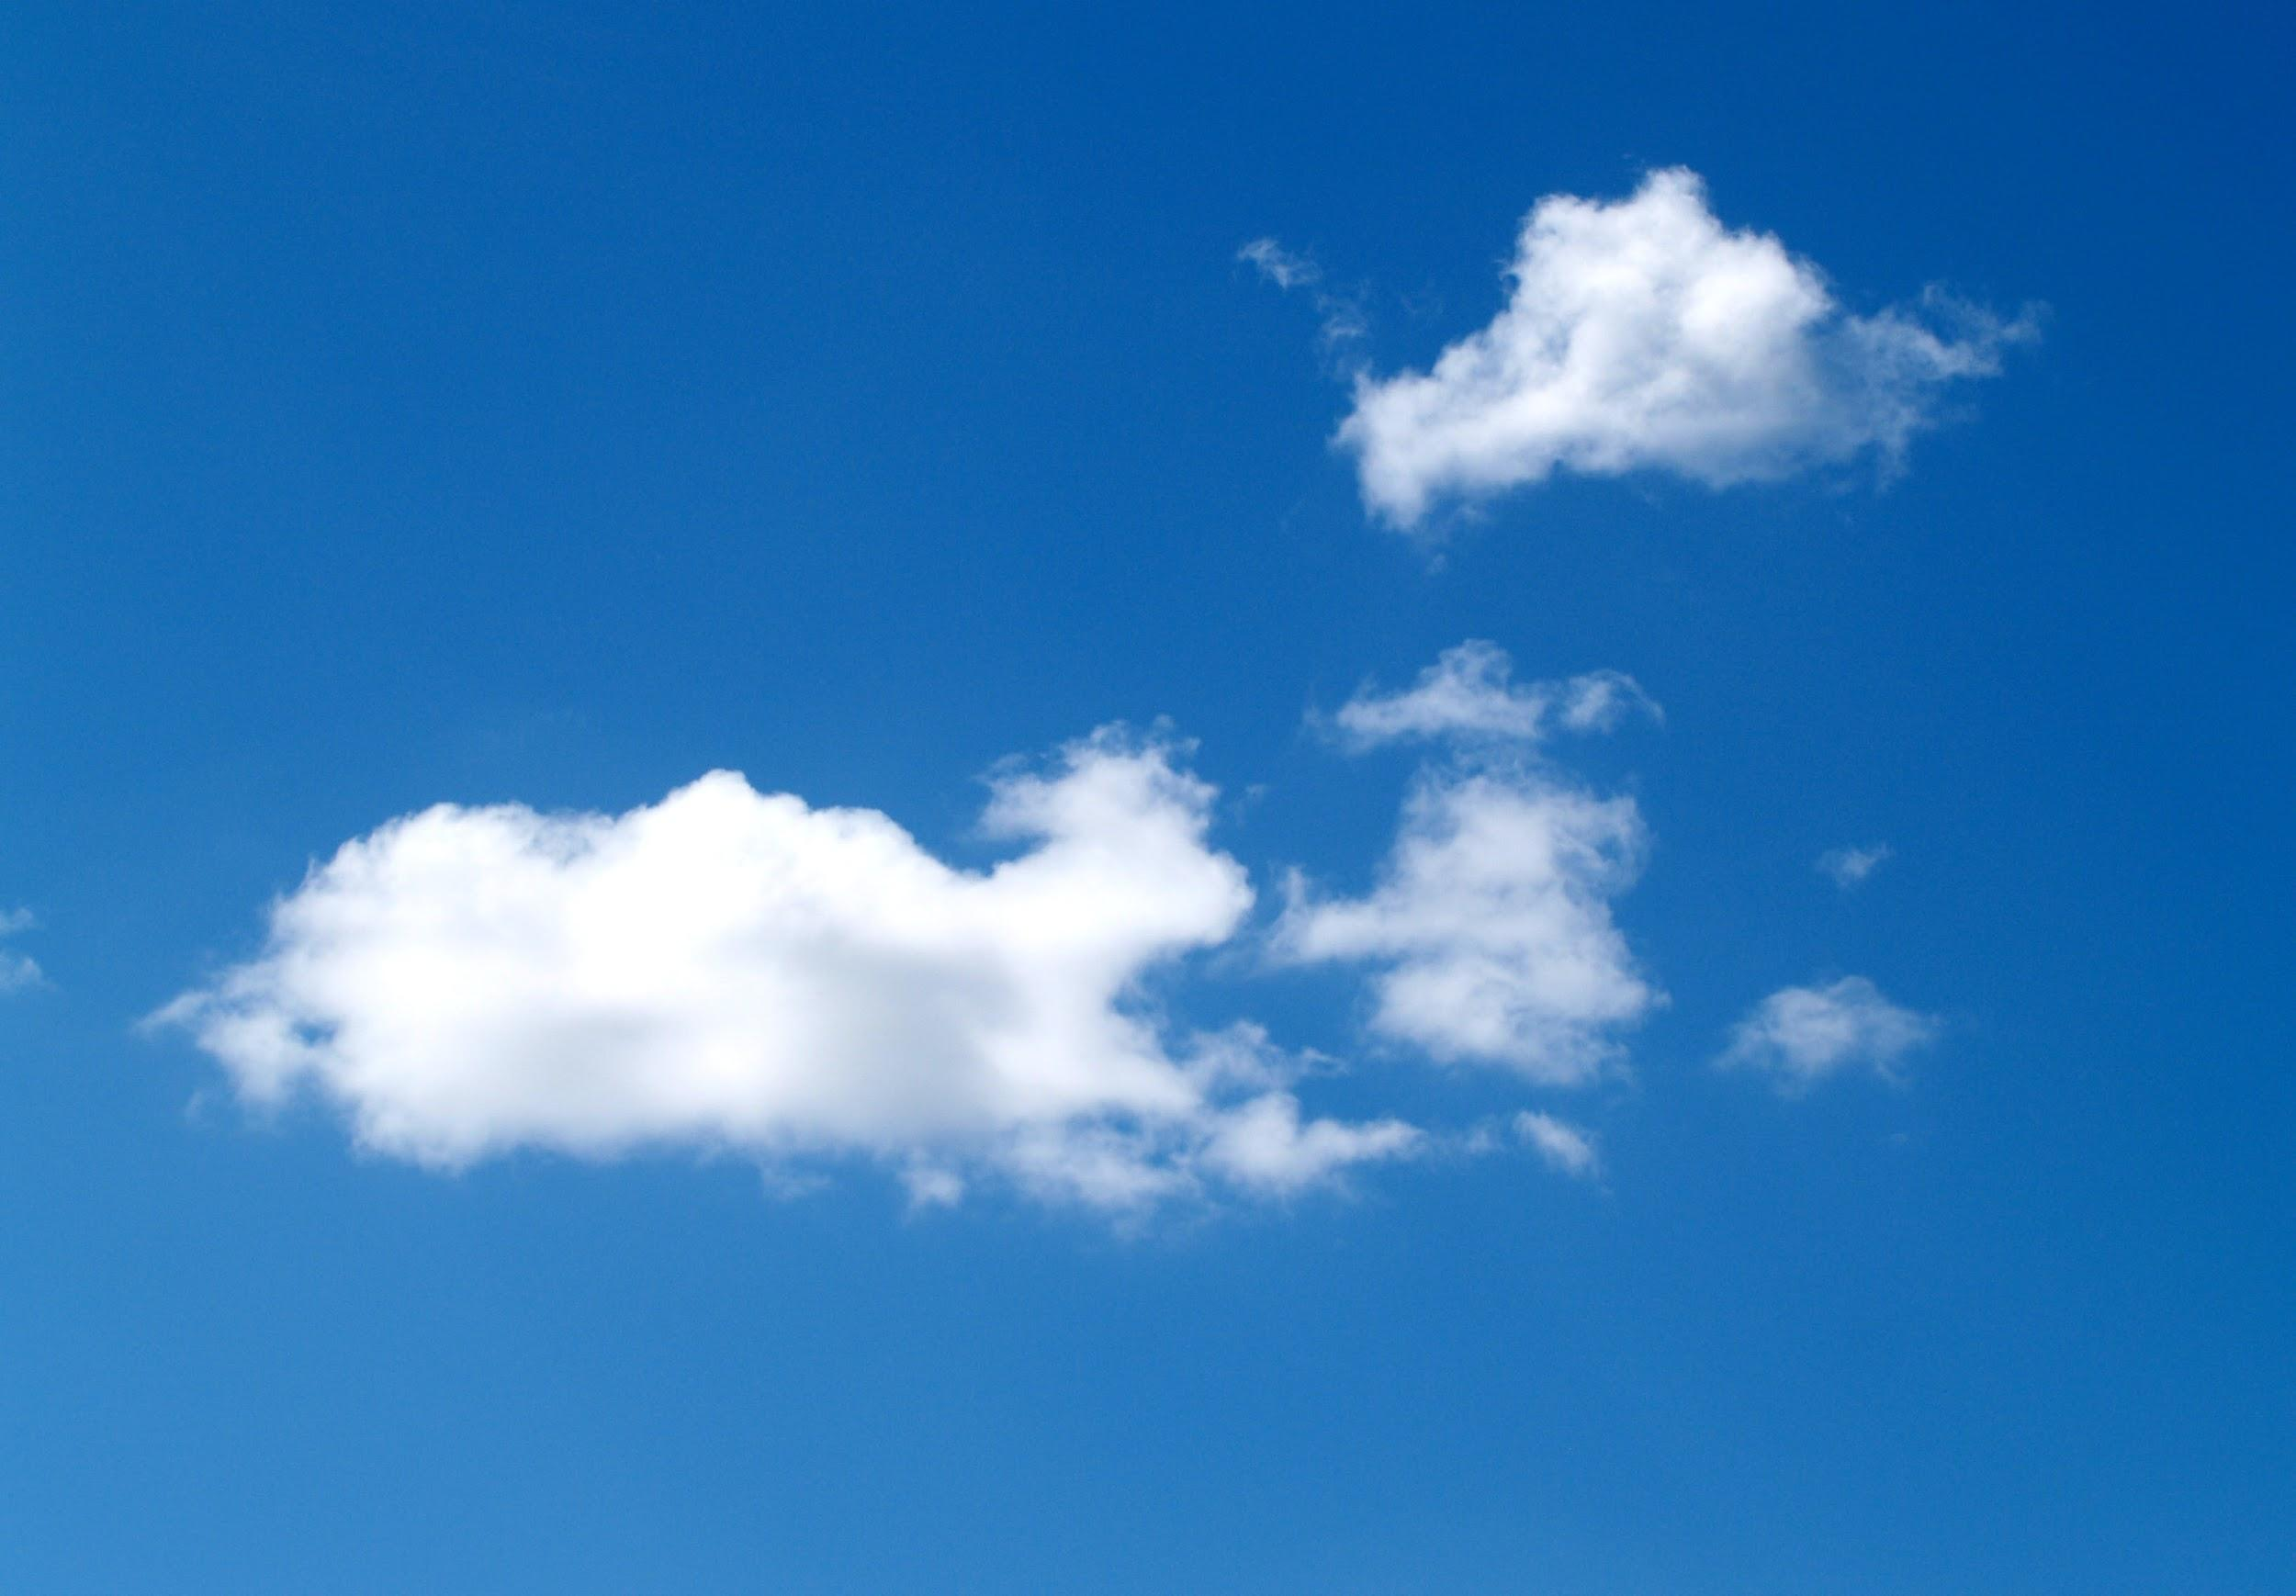 StrategyDriven Managing Your Business Article | Benefits Of Migrating To Cloud Computing